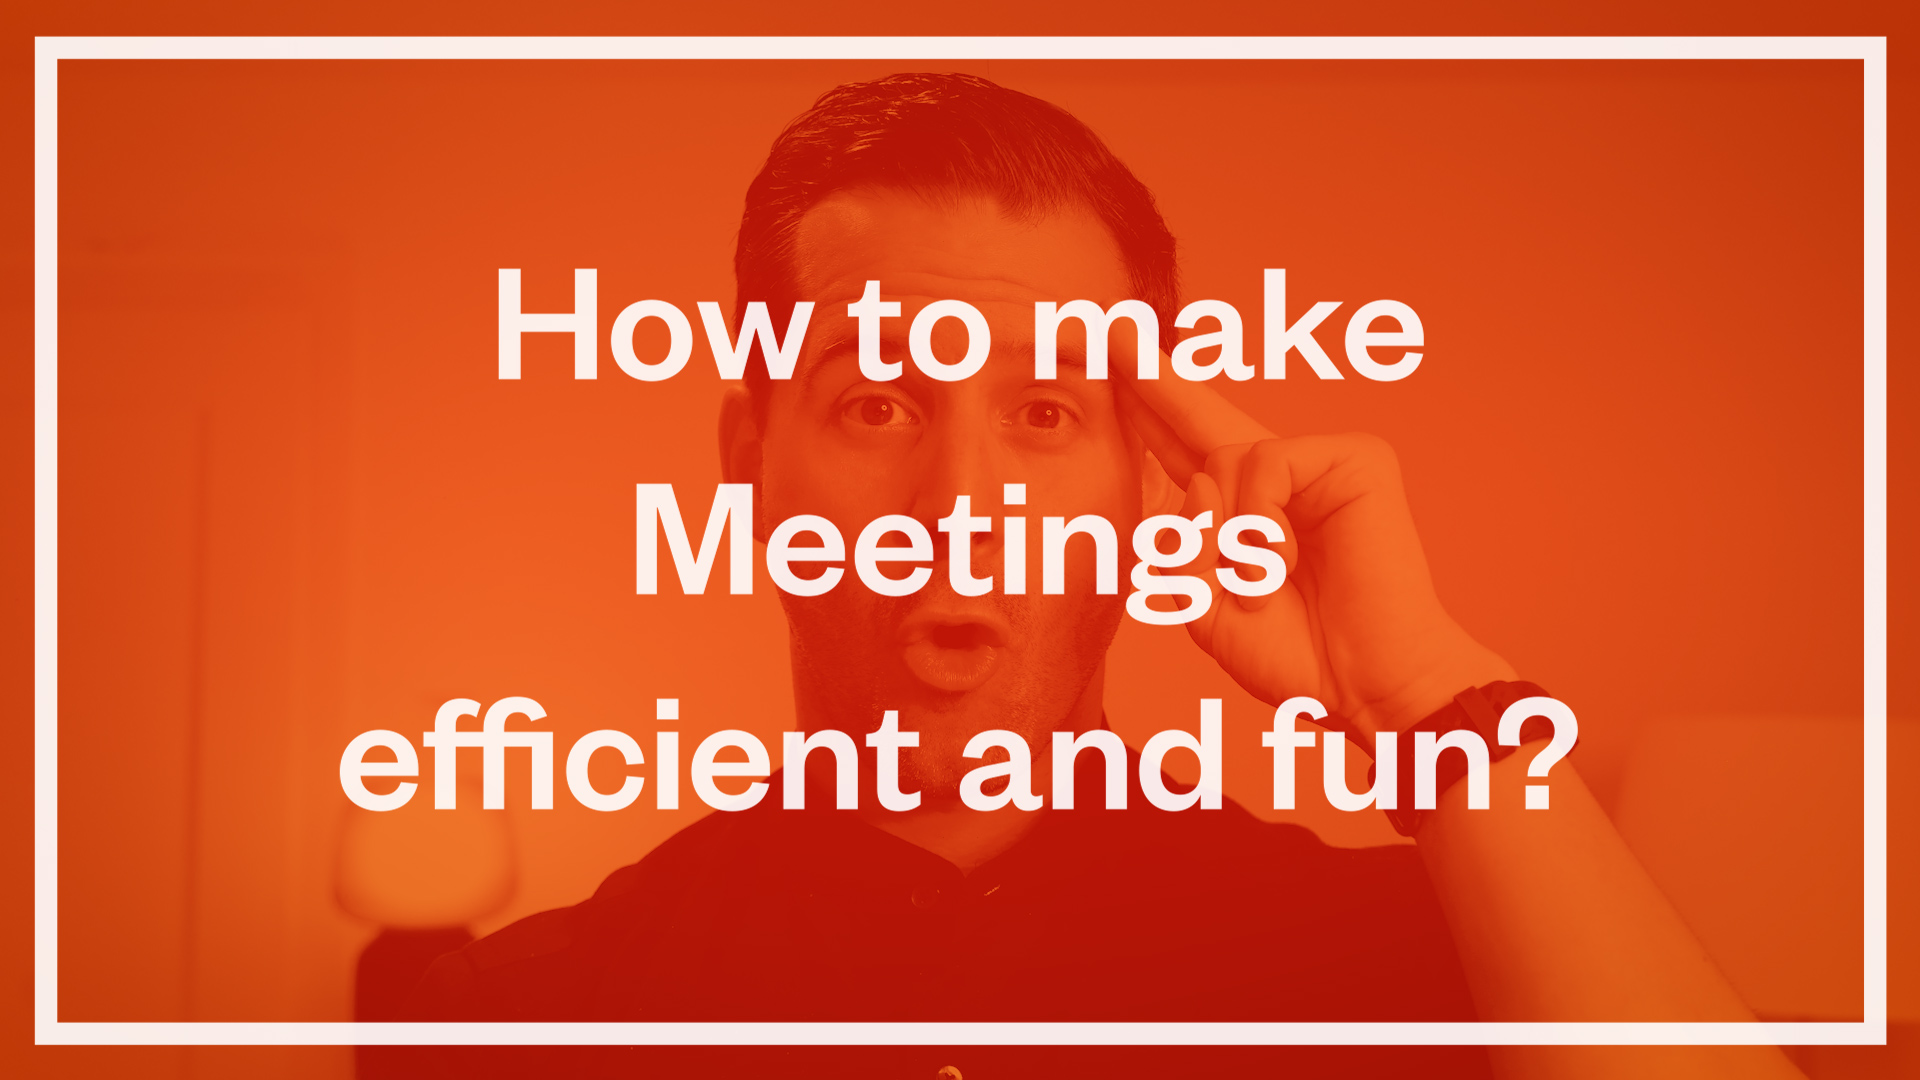 How to make Meetings efficient and fun